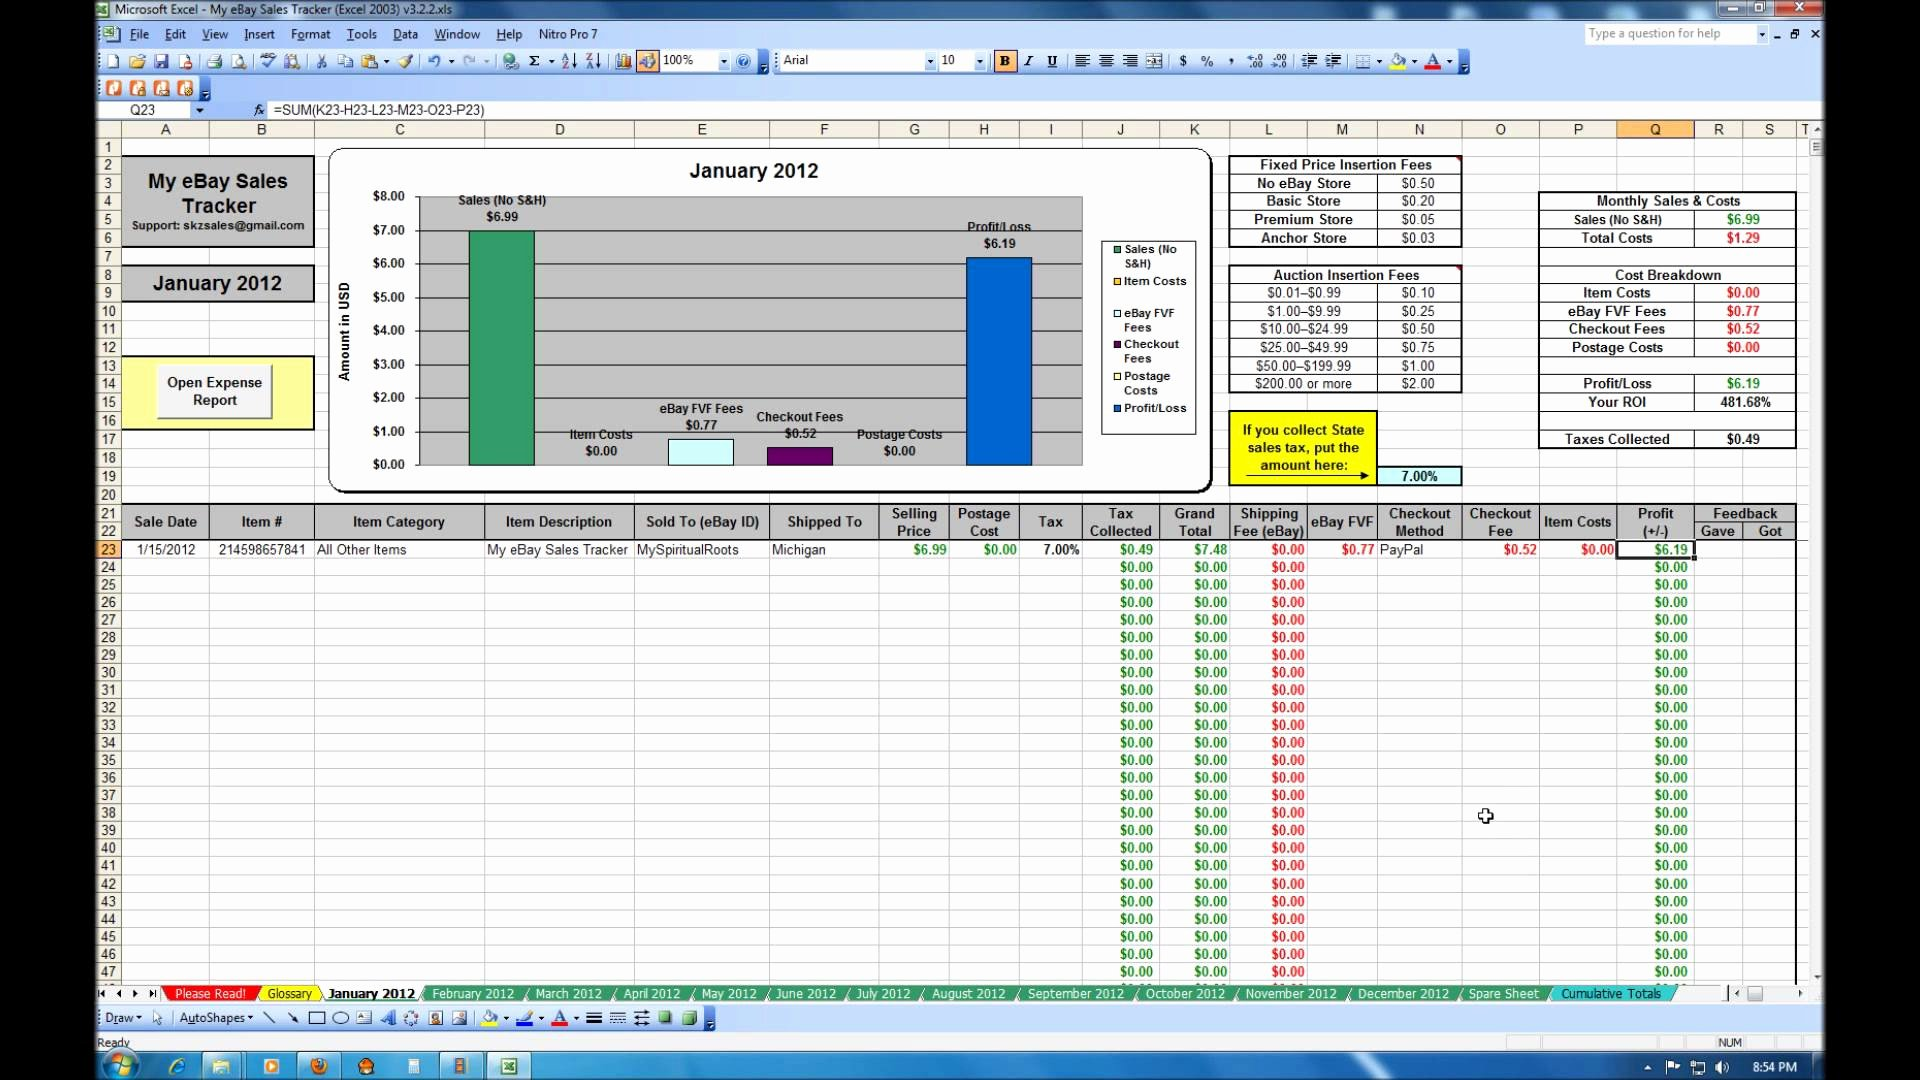 Applicant Tracking Spreadsheet Template Best Of Applicant Tracking Spreadsheet Template Sales Tracking